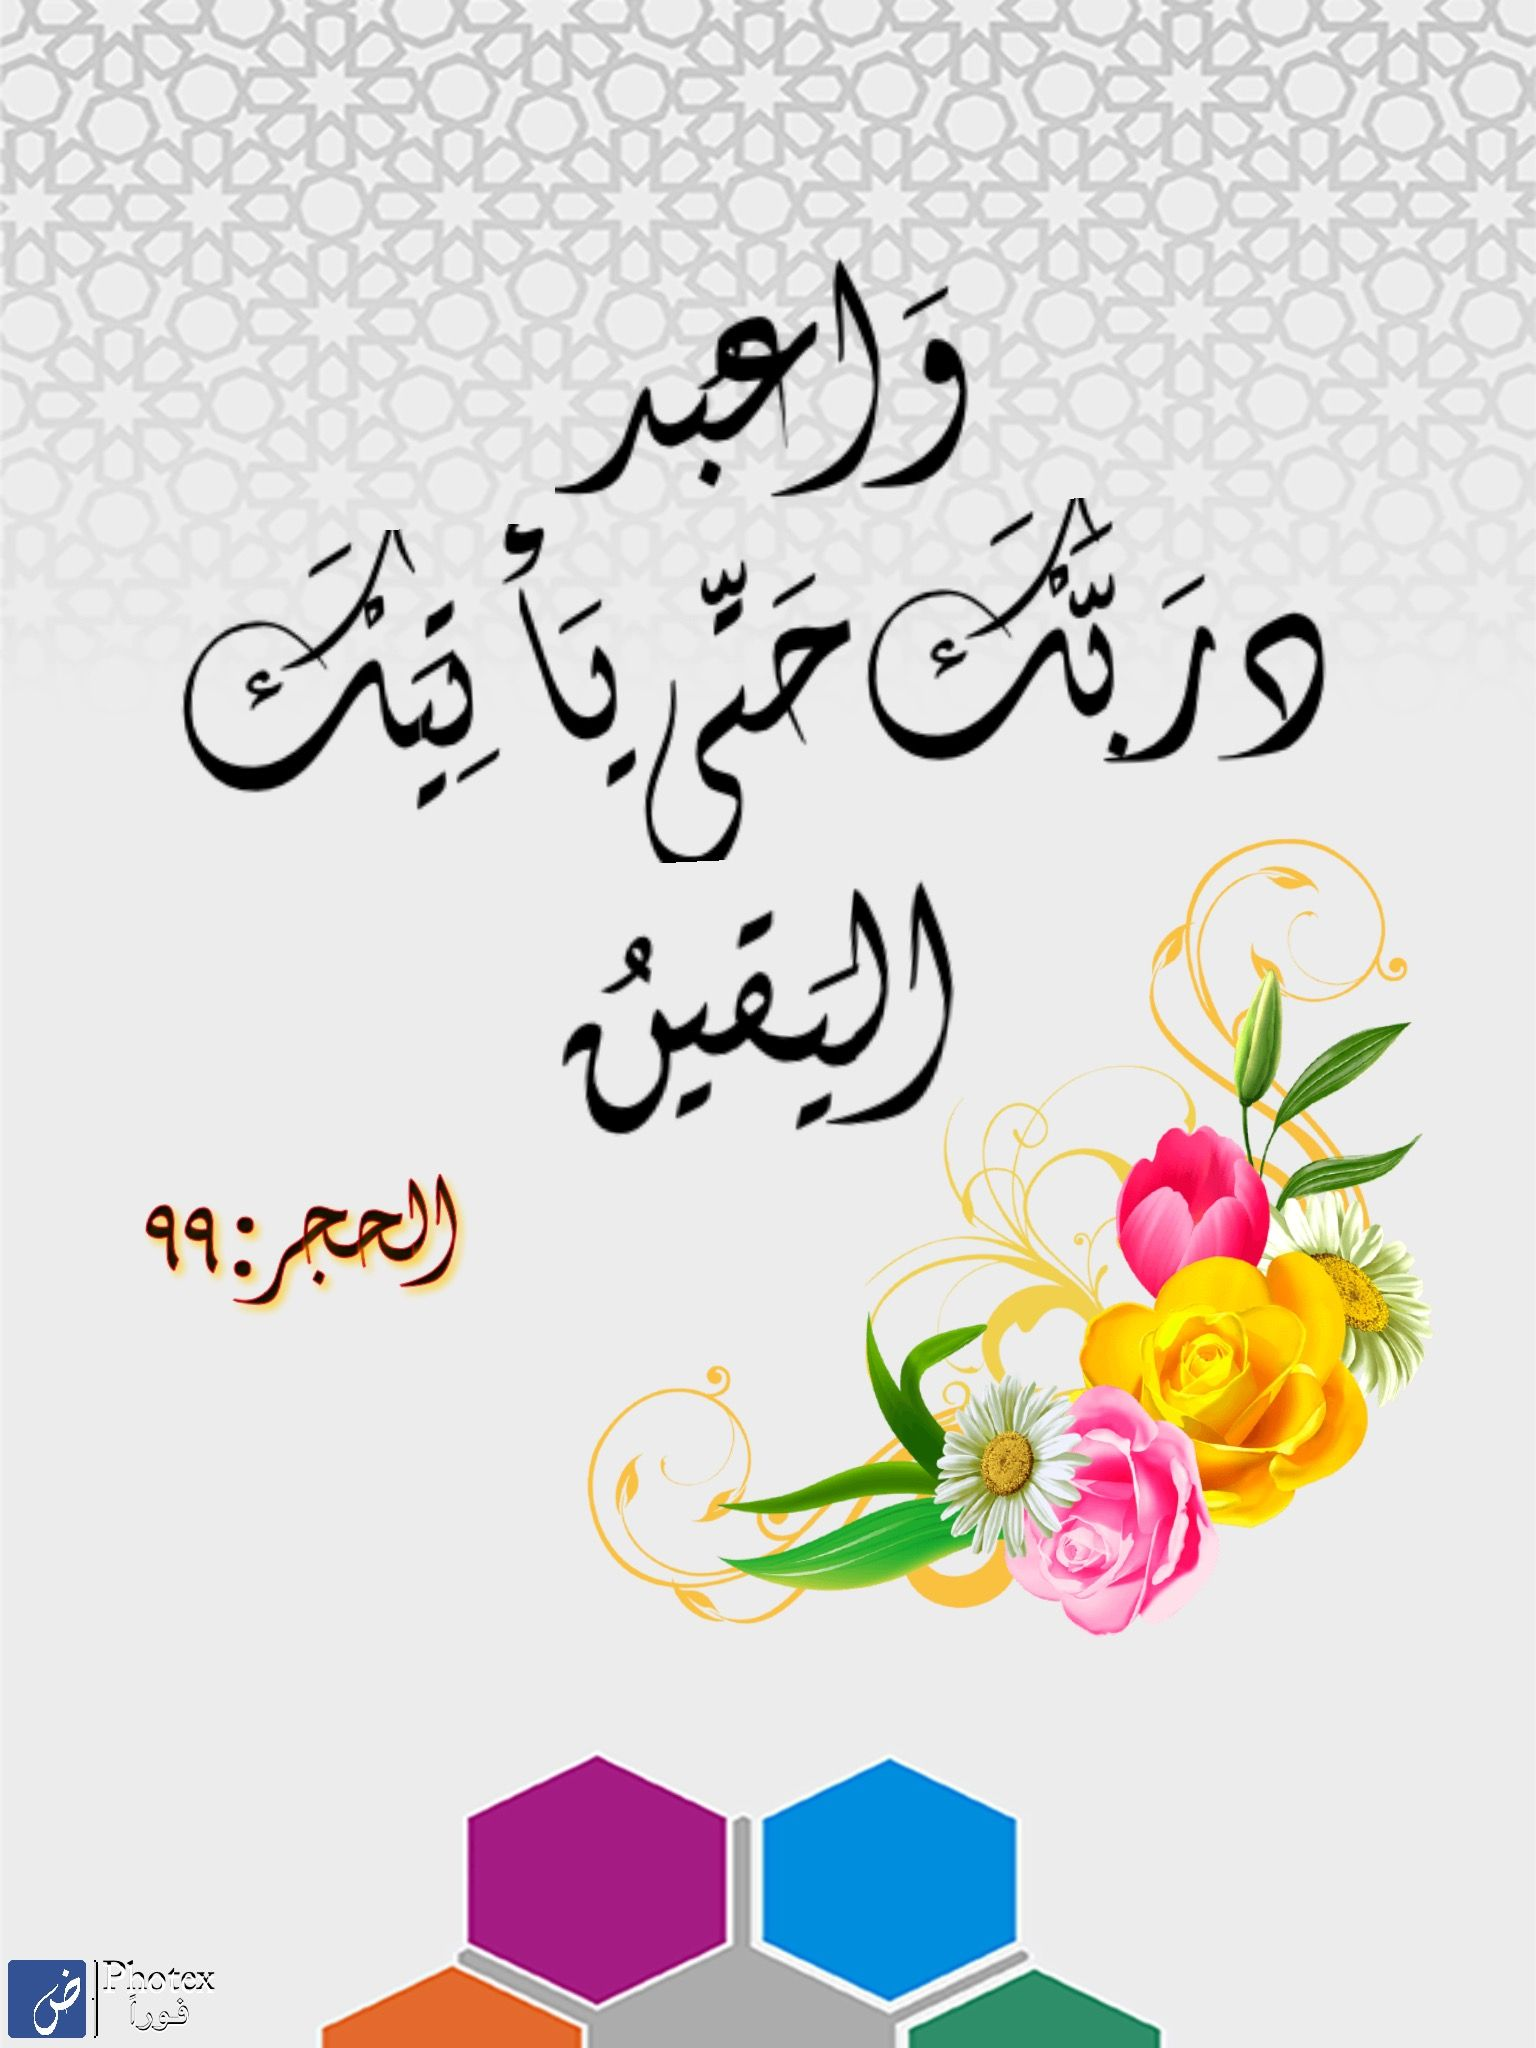 Pin By Toto On صور Short Quotes Love Beautiful Arabic Words Arabic Love Quotes